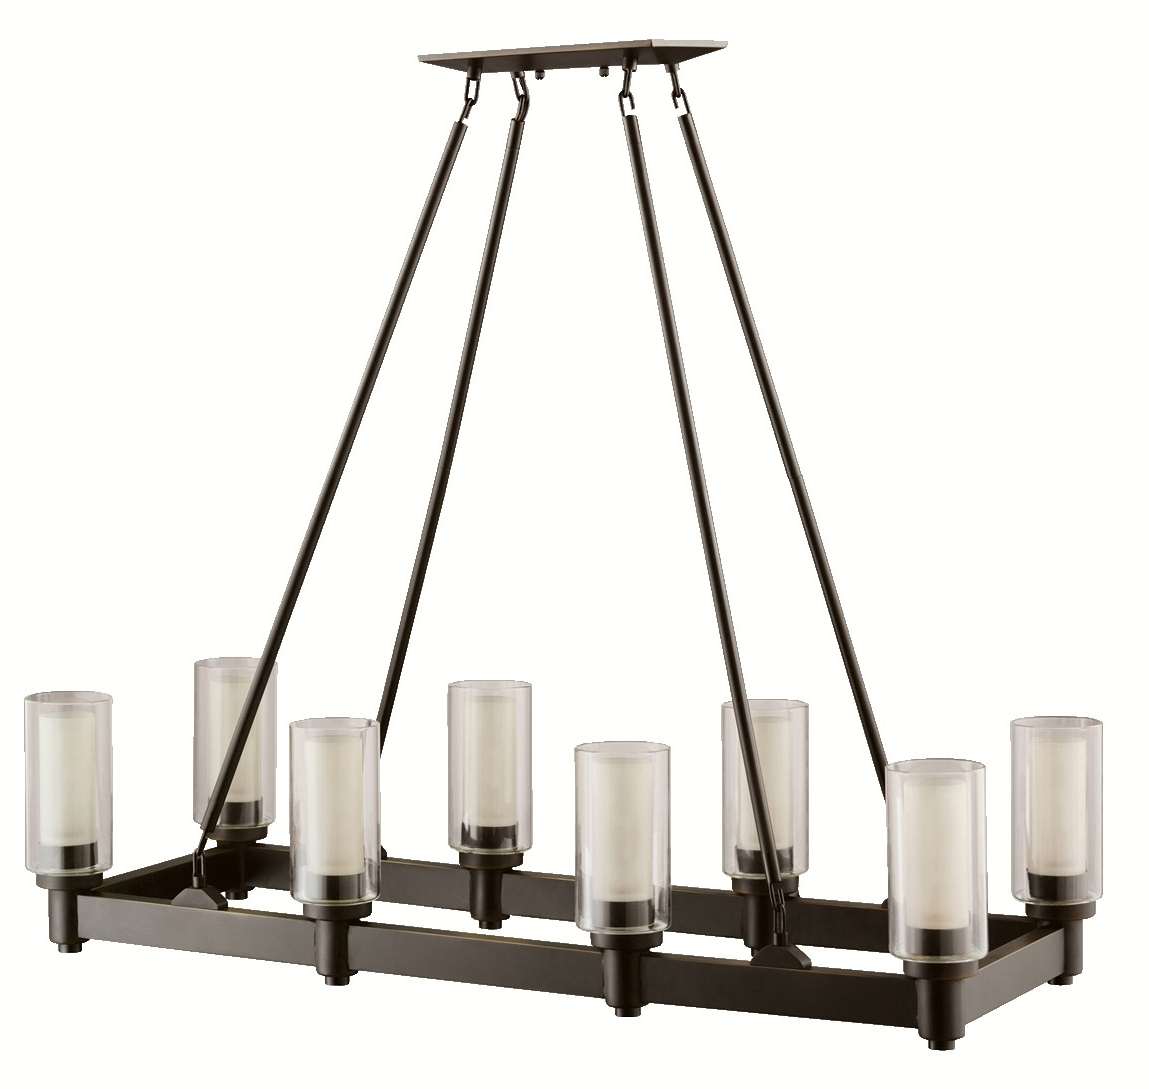 Black Iron Chandeliers For Widely Used Hand Forged Hanging Black Rectangular Iron Chandeliers With 8 Glass (View 6 of 15)